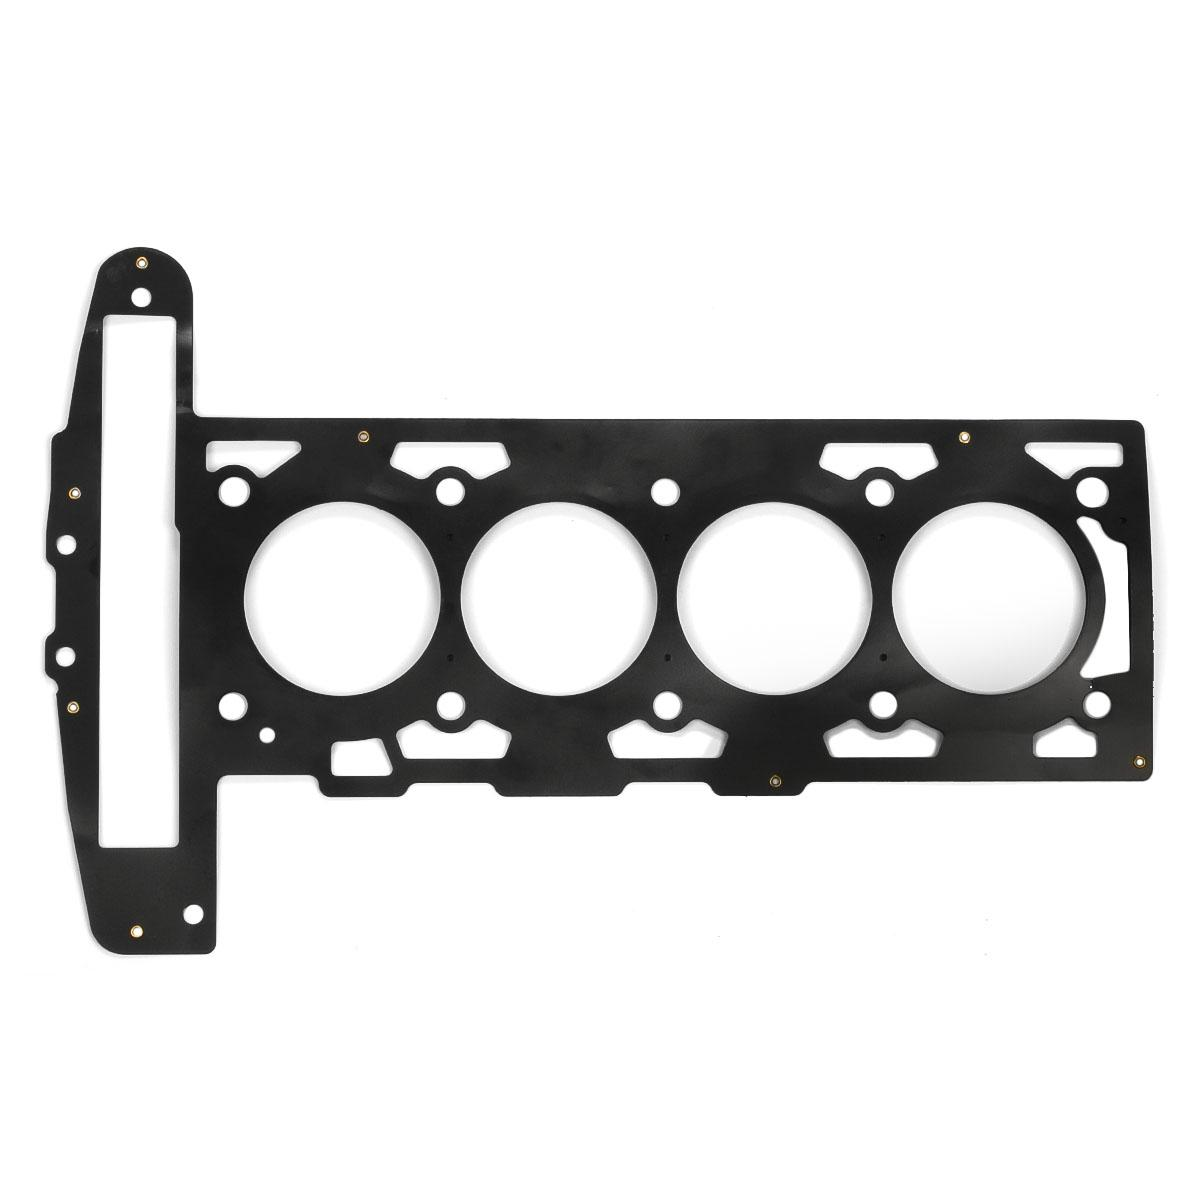 Cylinder Head Gasket 2 Per Engine 07v103147: For 02-06 GMC Chevrolet Saturn 2.2L Cylinder Head Gasket Kit